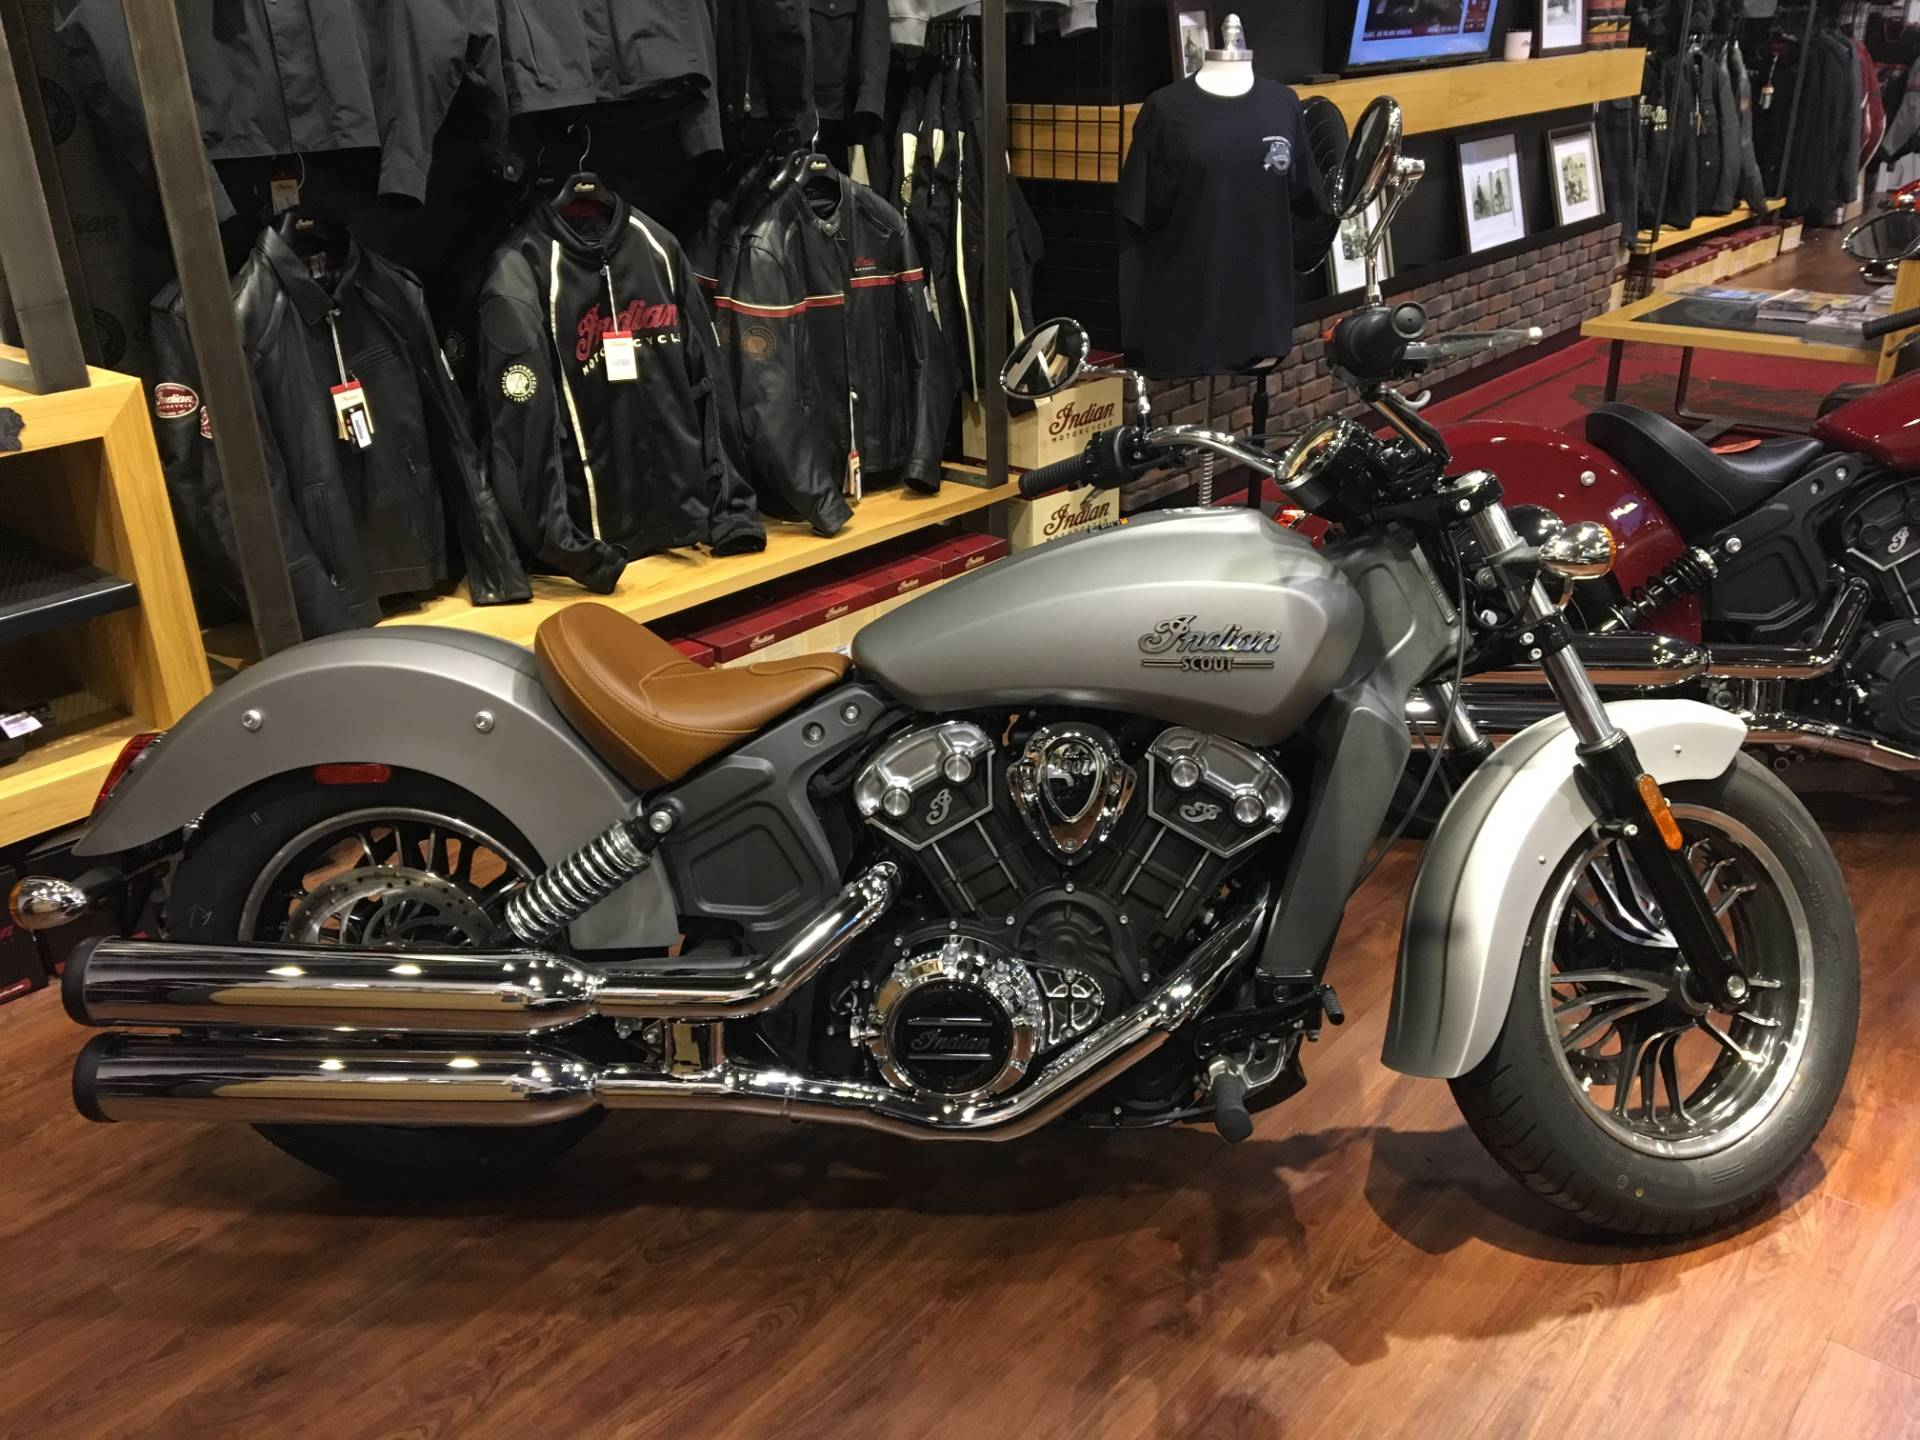 2016 indian scout used indian scout for sale in greensboro north carolina. Black Bedroom Furniture Sets. Home Design Ideas